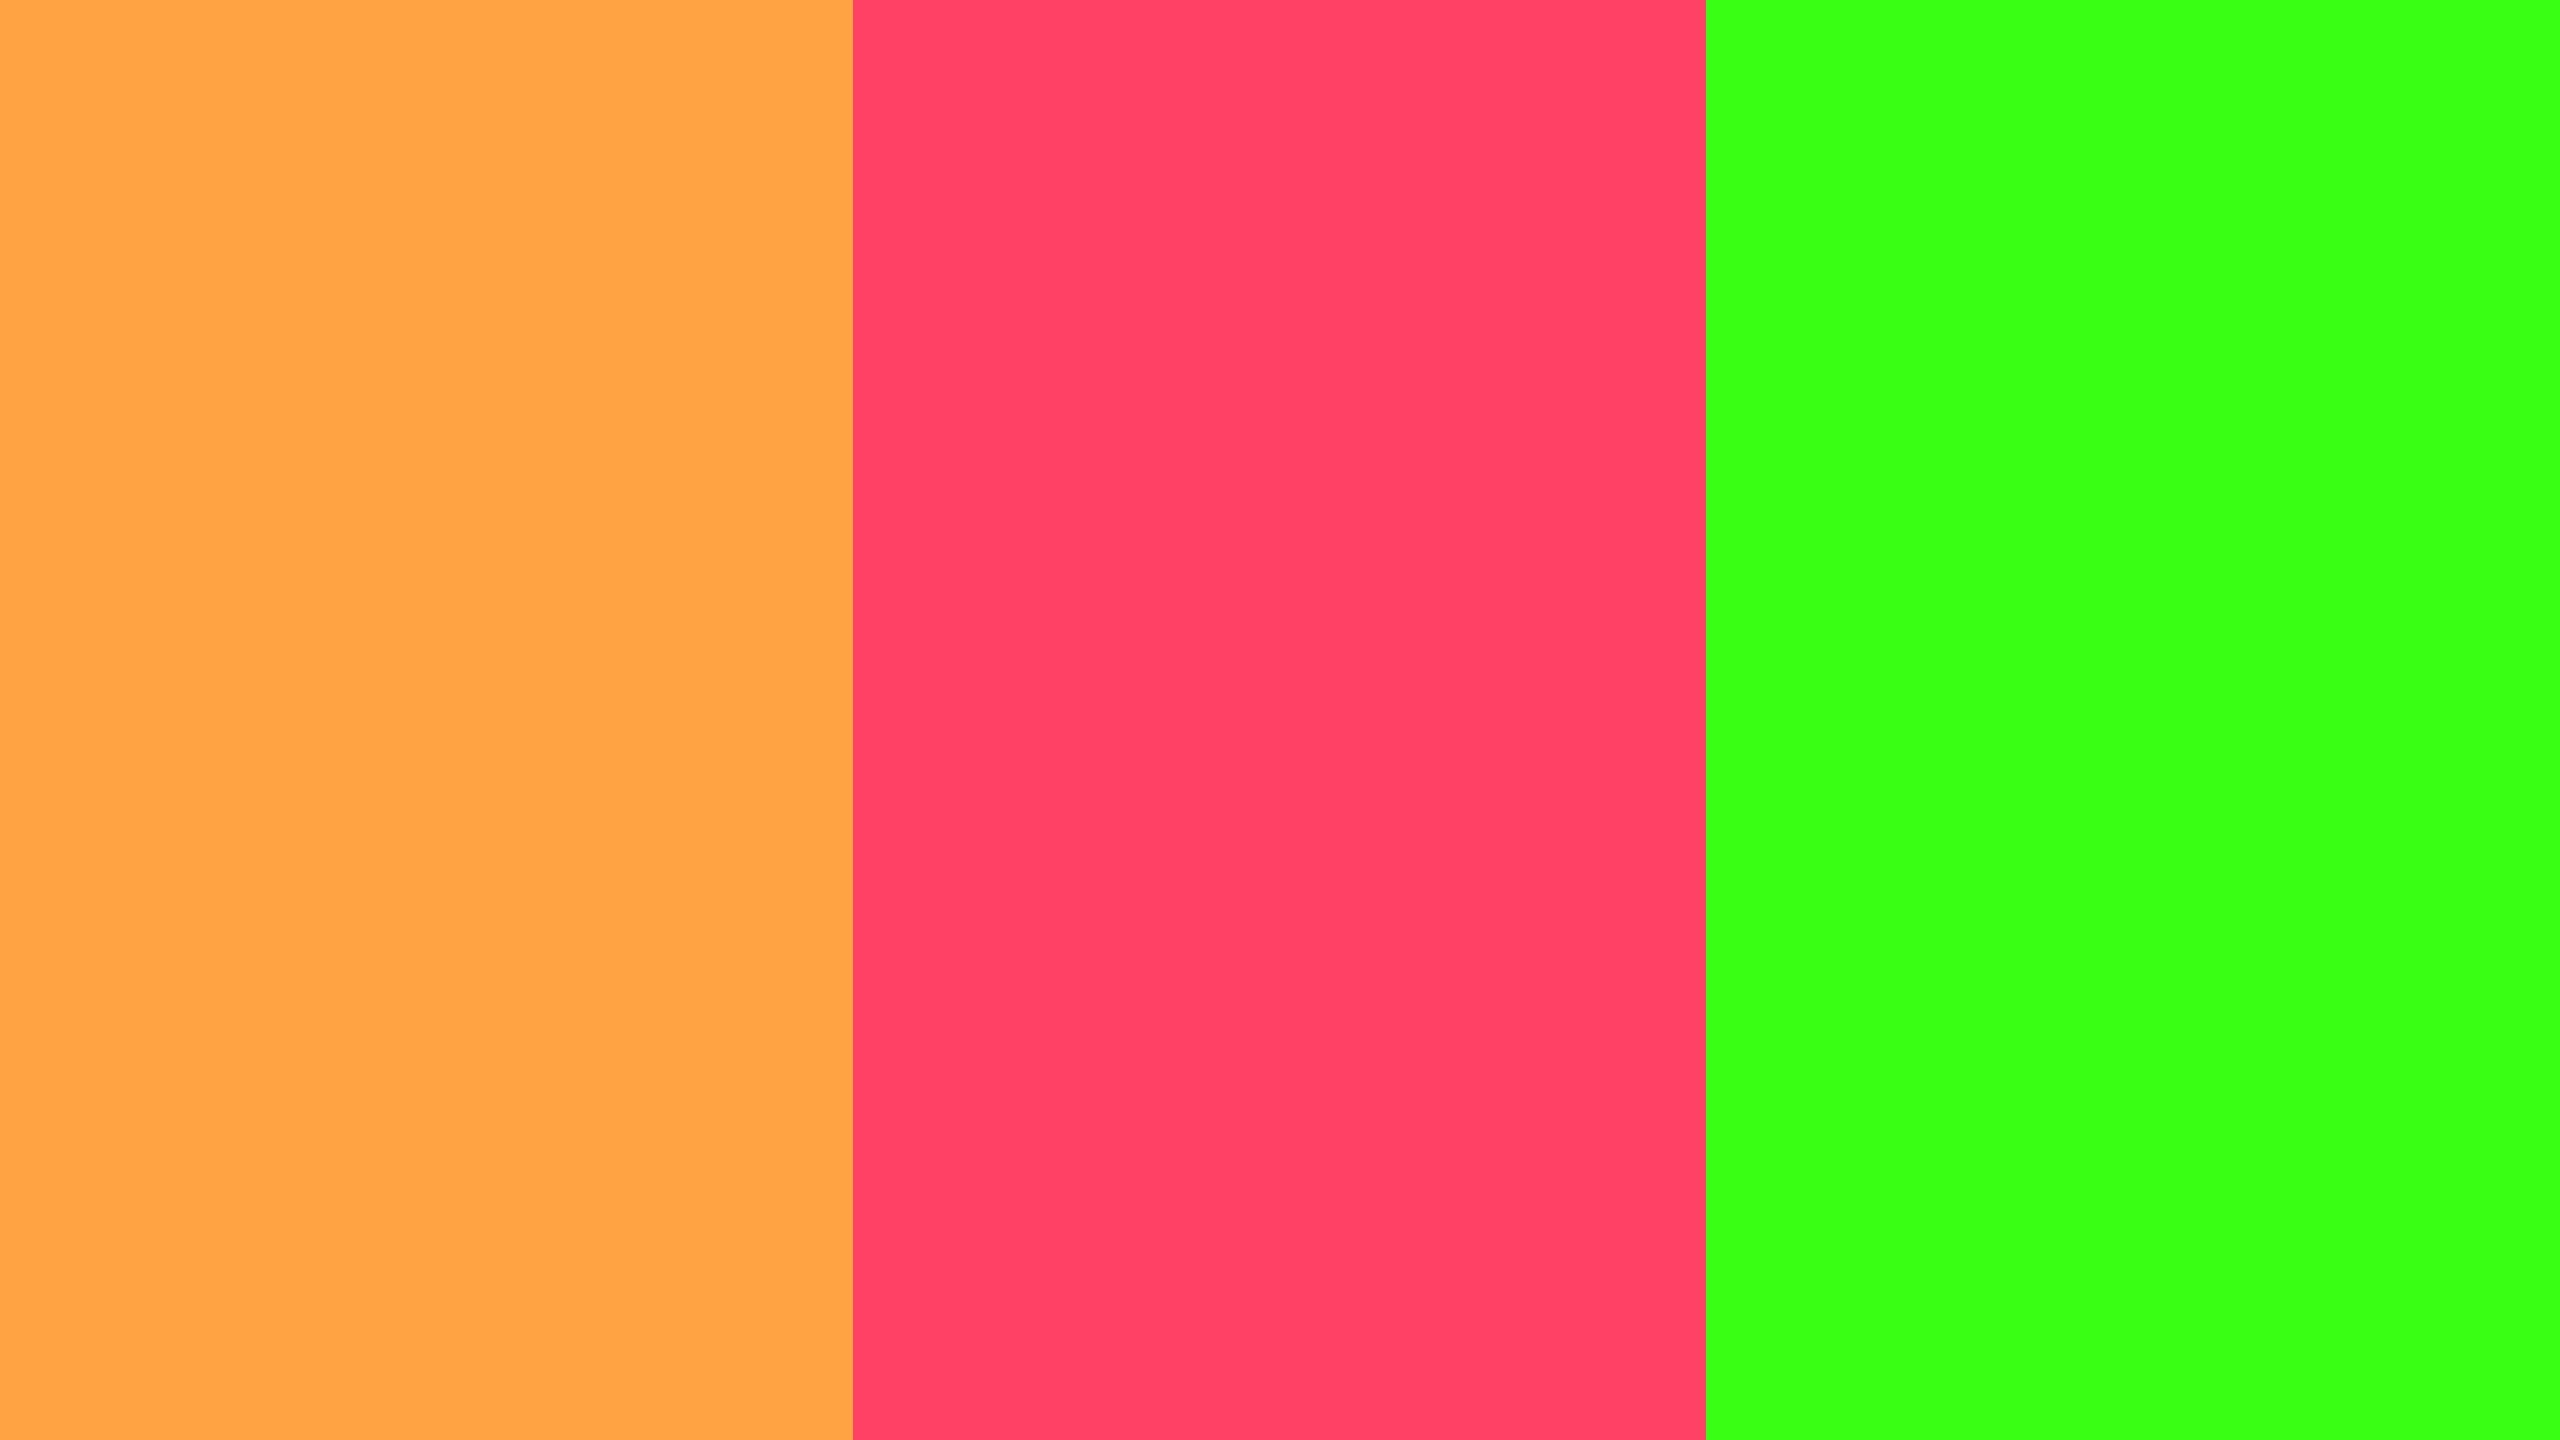 Neon Carrot, Neon Fuchsia and Neon Green solid three color background .